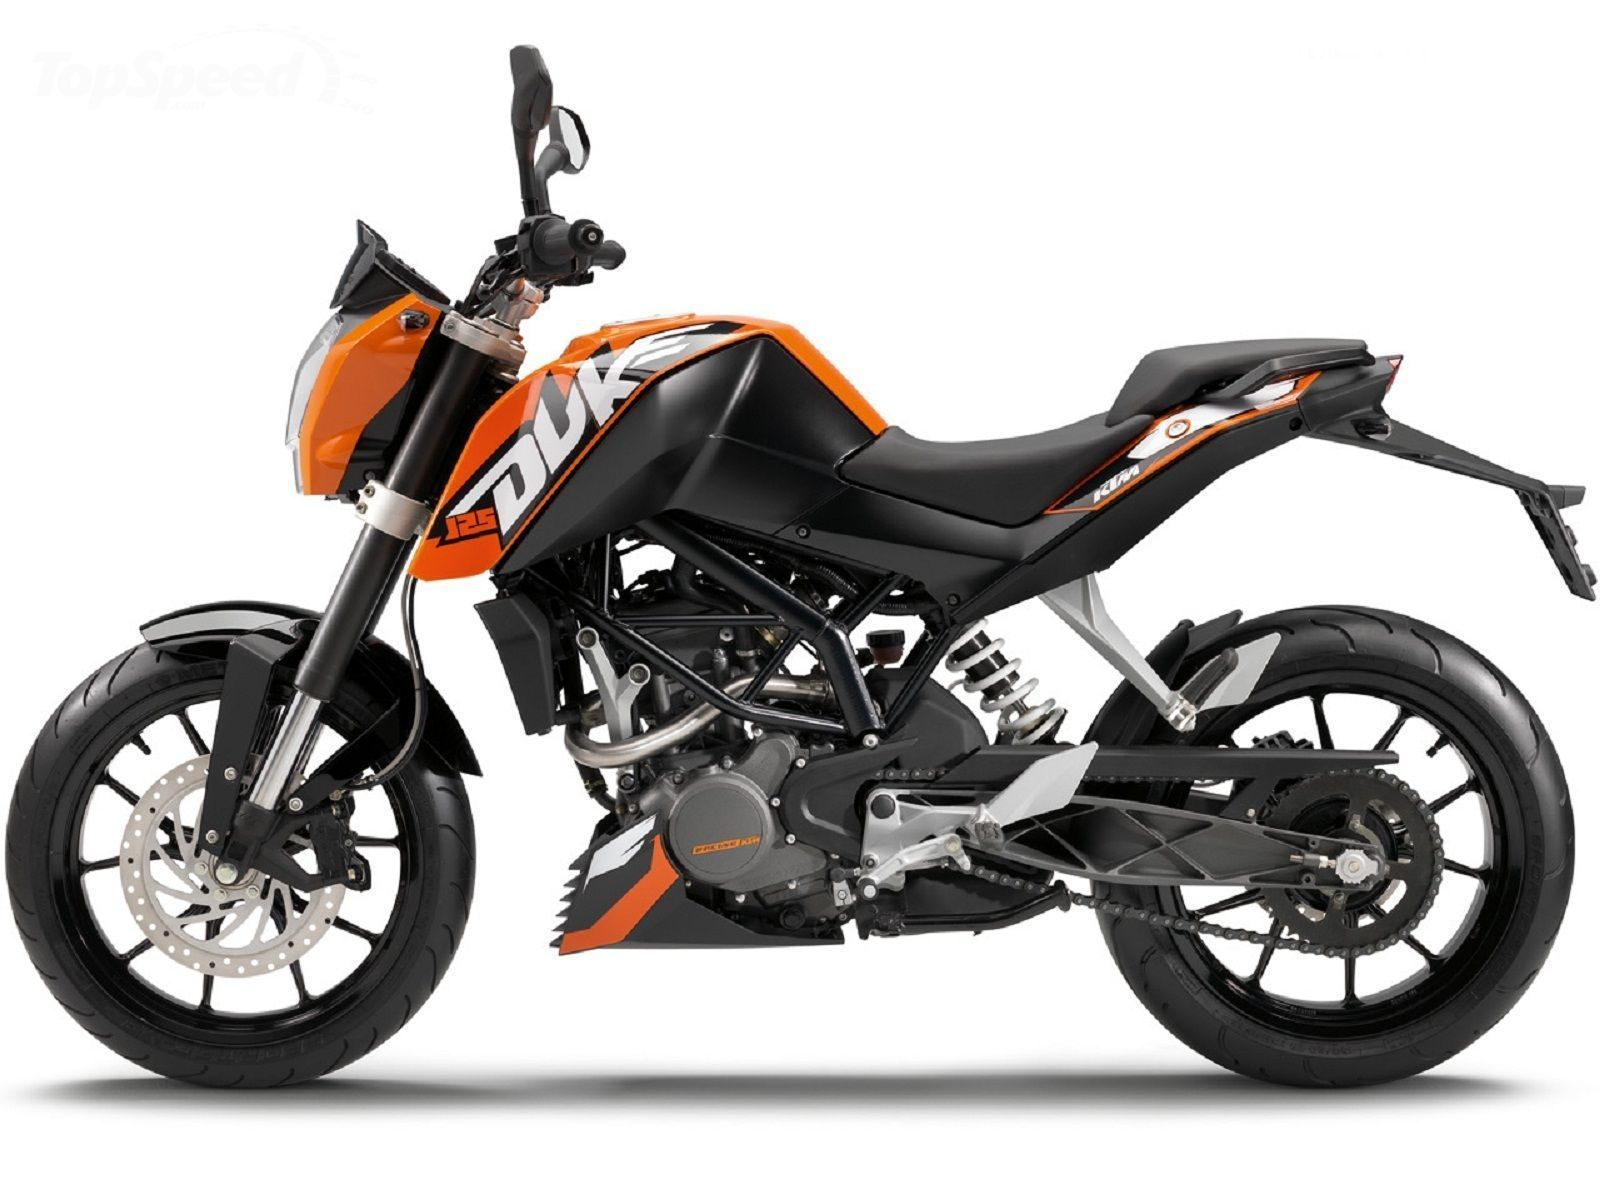 Ktm When The New 1290 Super Dukes Out I May Change My Brand